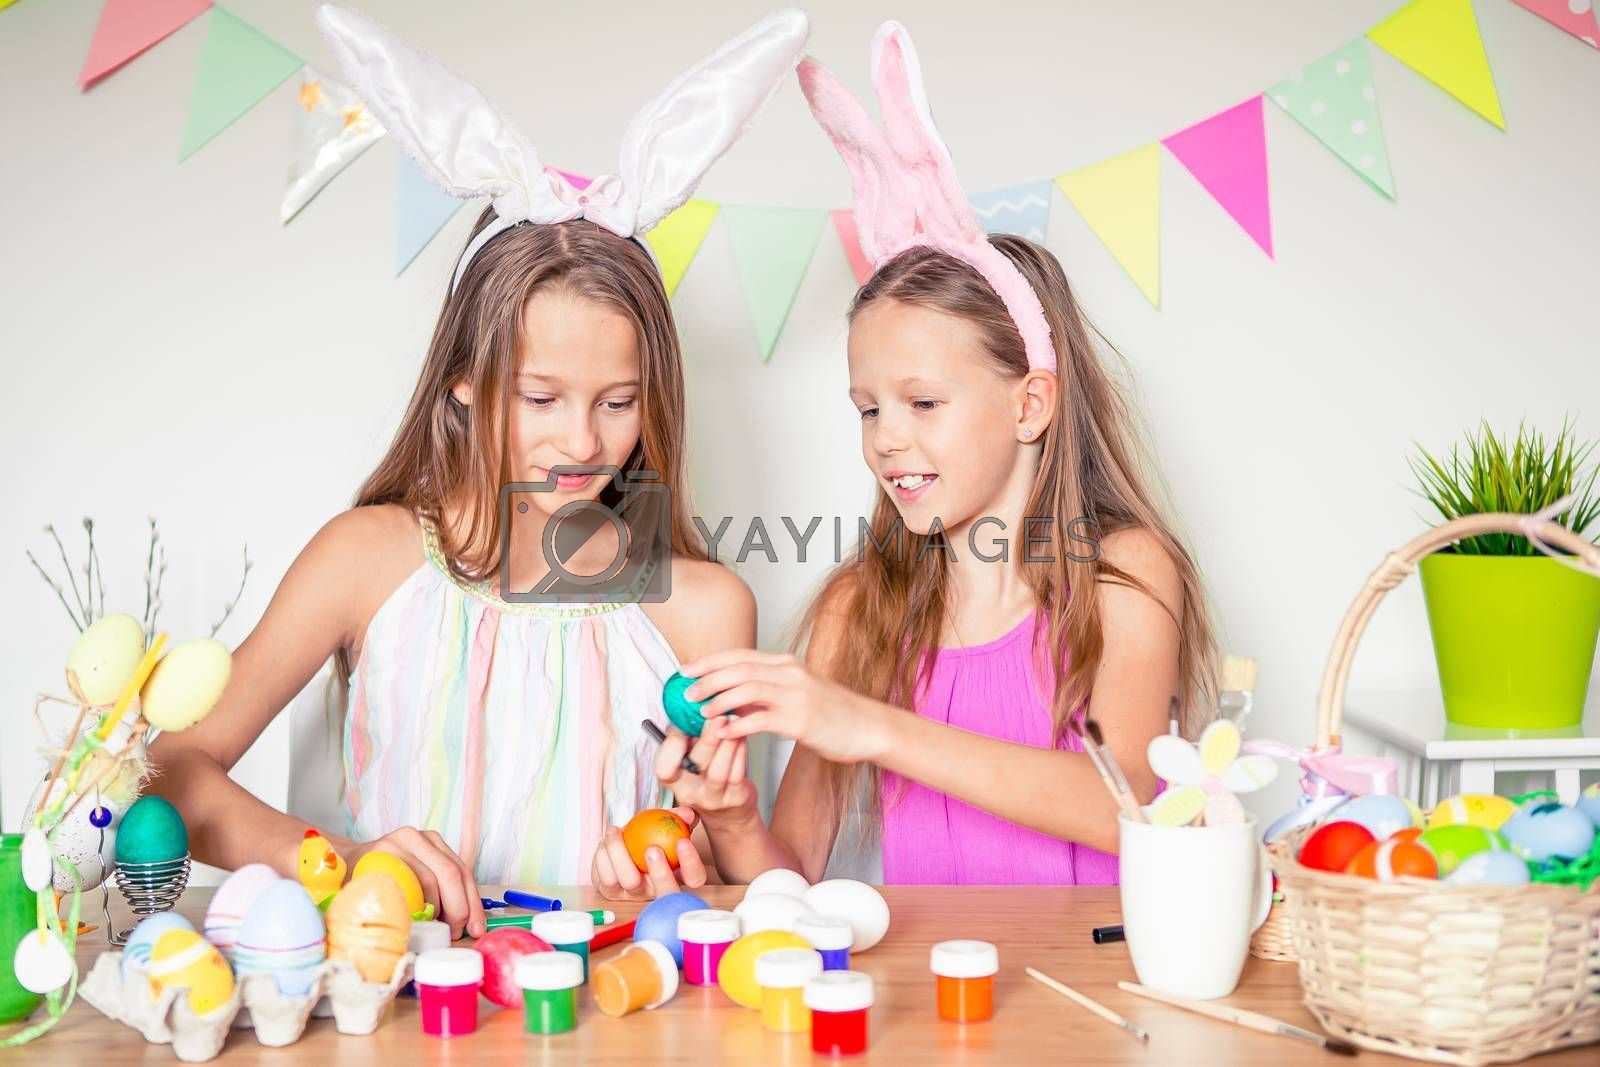 Happy Easter. Children painting Easter eggs and having fun on Easter day.